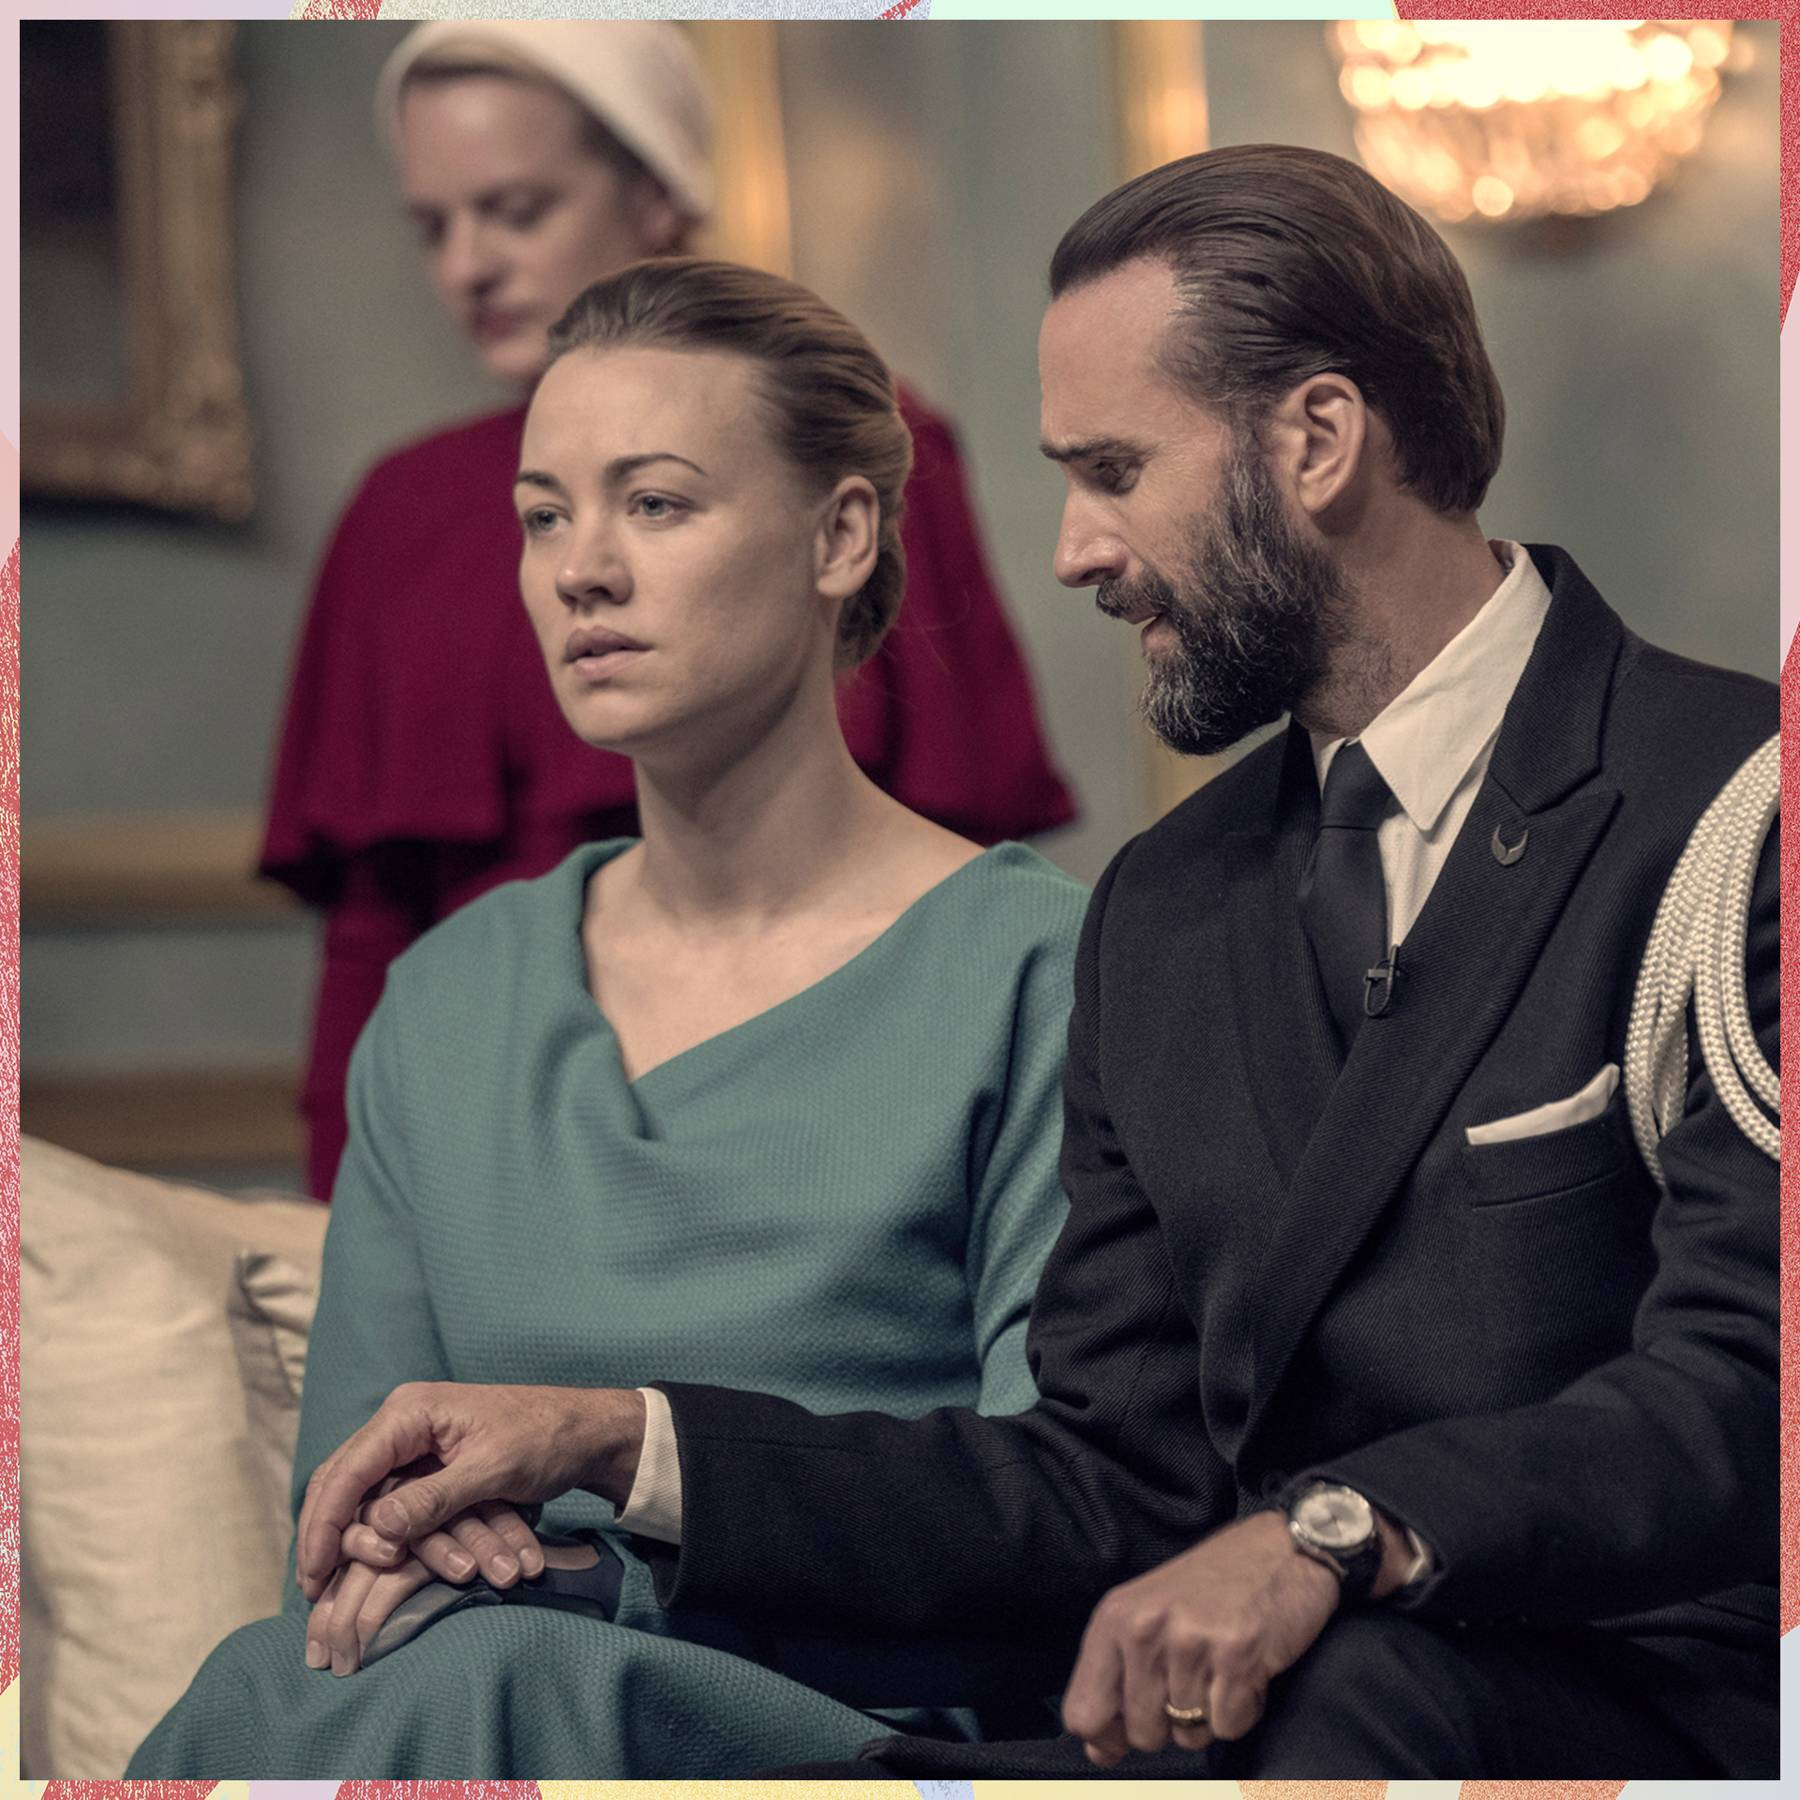 Here's what finally happens to Offred in The Handmaid's Tale...